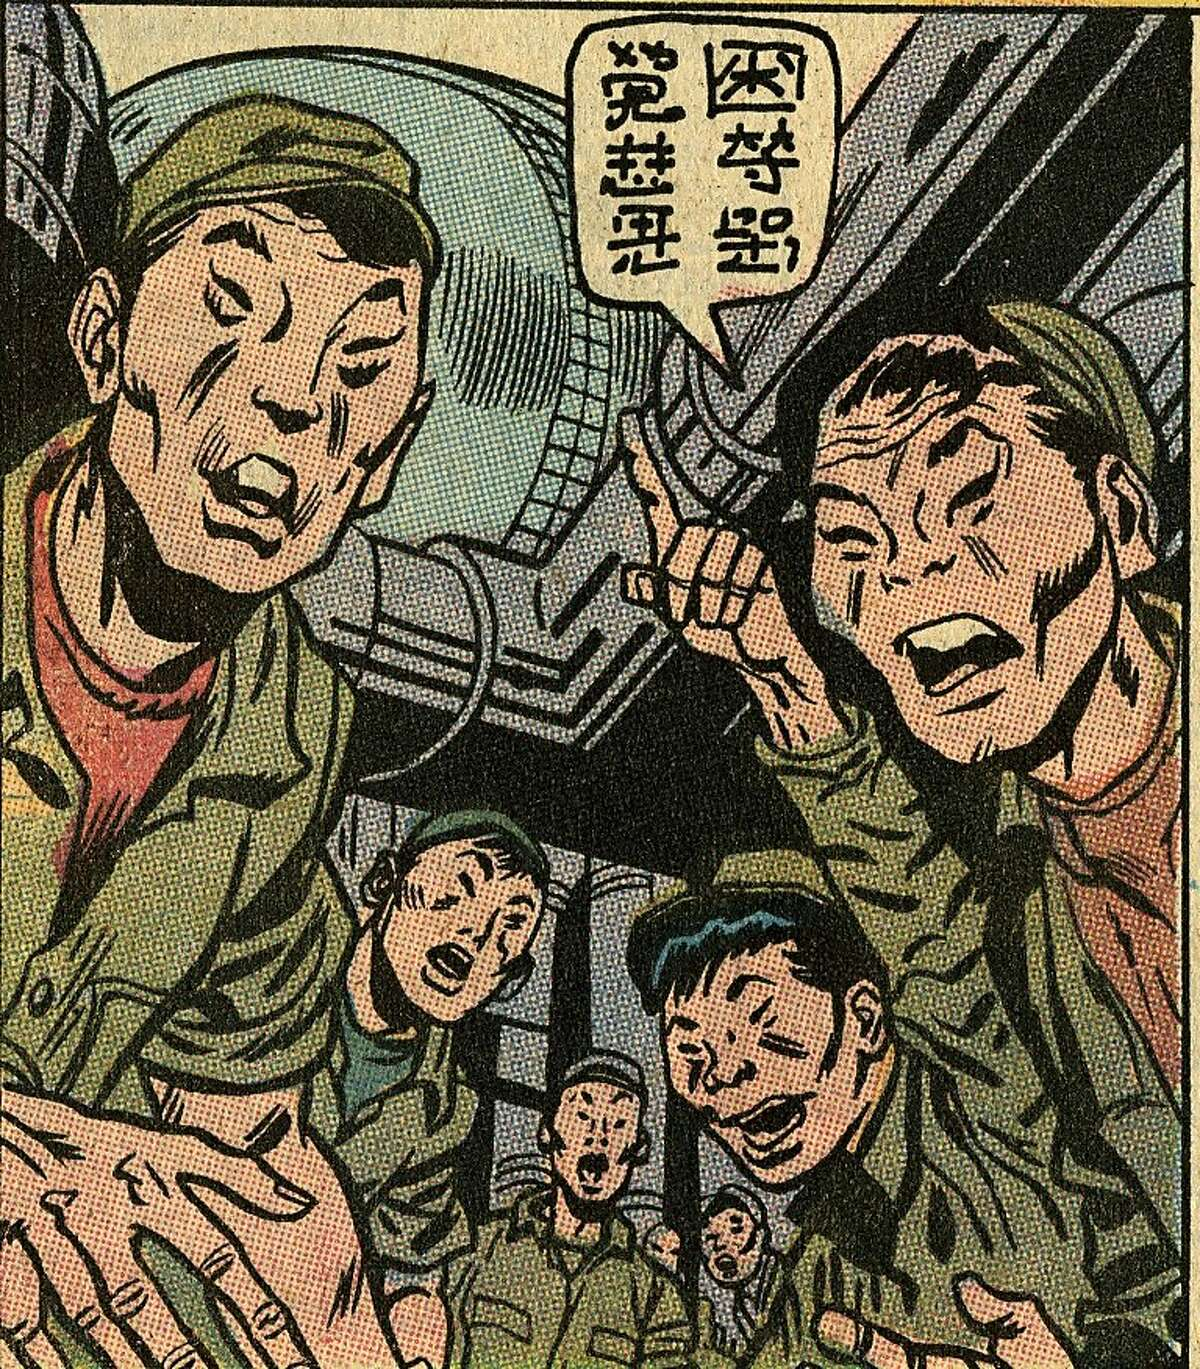 THE ALIEN -- Asians, speaking in tongues, in The Invincible Iron Man 130 (1980).